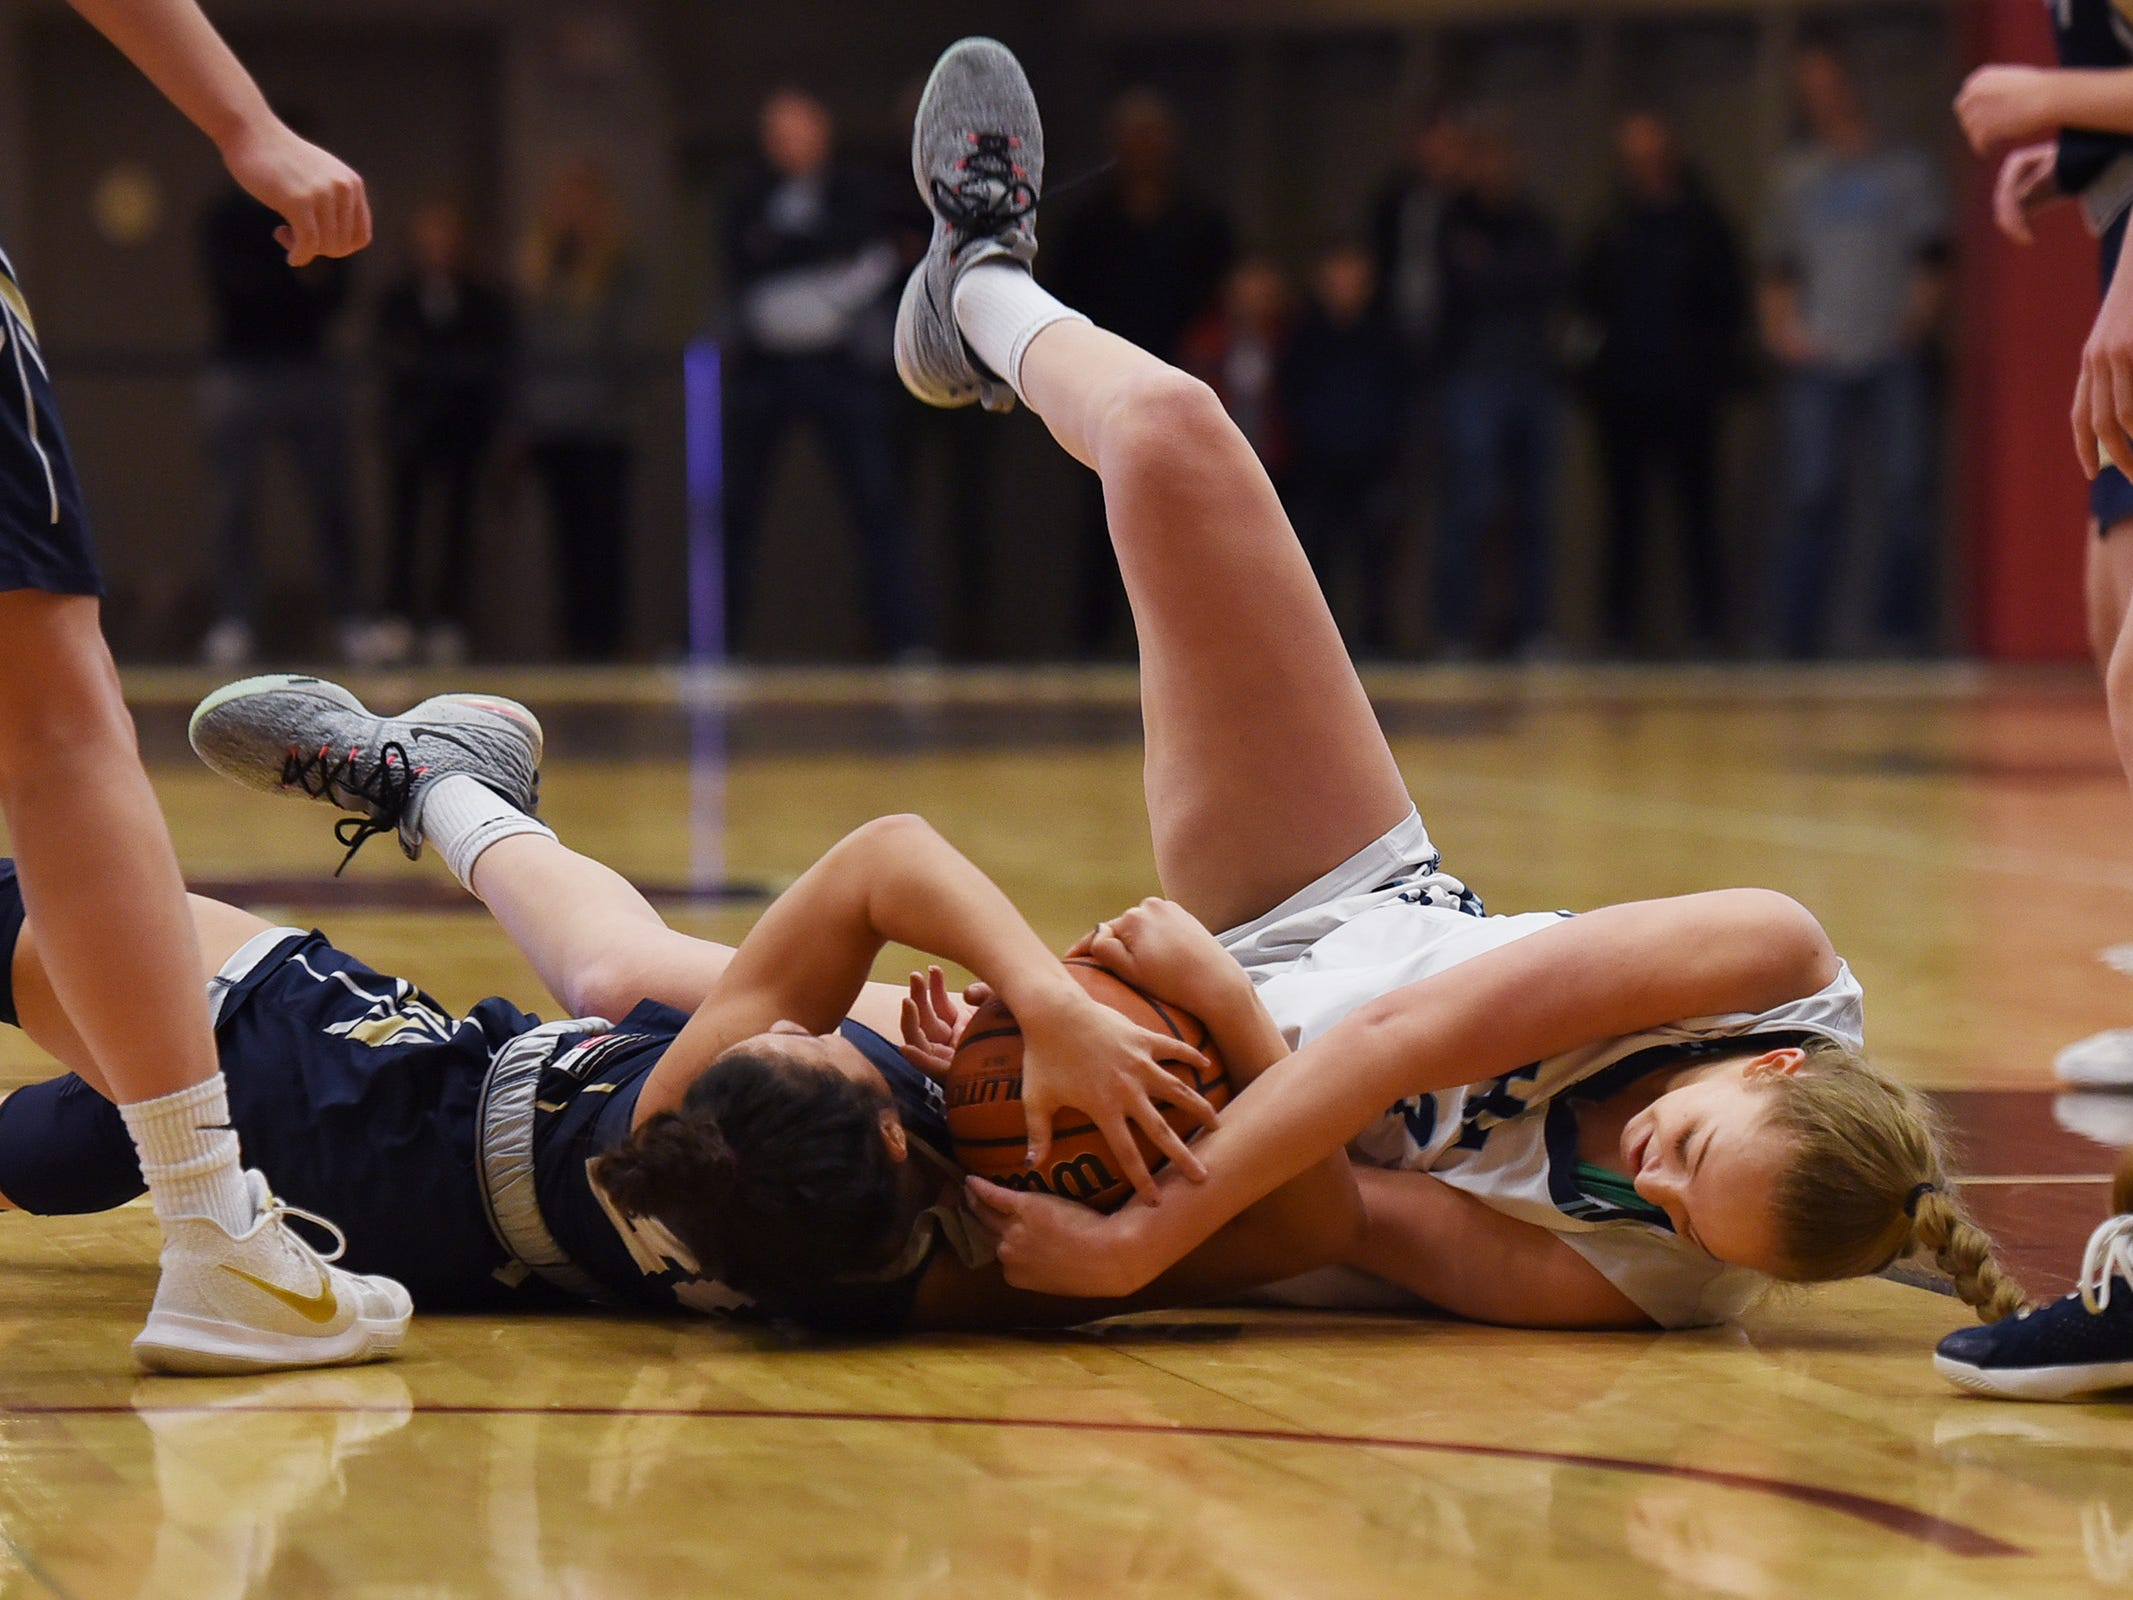 Anna Morris (no.42) of Immaculate Heart battles for a loose ball on the floor against Gianna Saccoccio (no.20) of NV/Old Tappan in the first half during the 2019 Bergen County girls basketball championship semifinal at Ramapo College in Mahwah on 02/10/19.